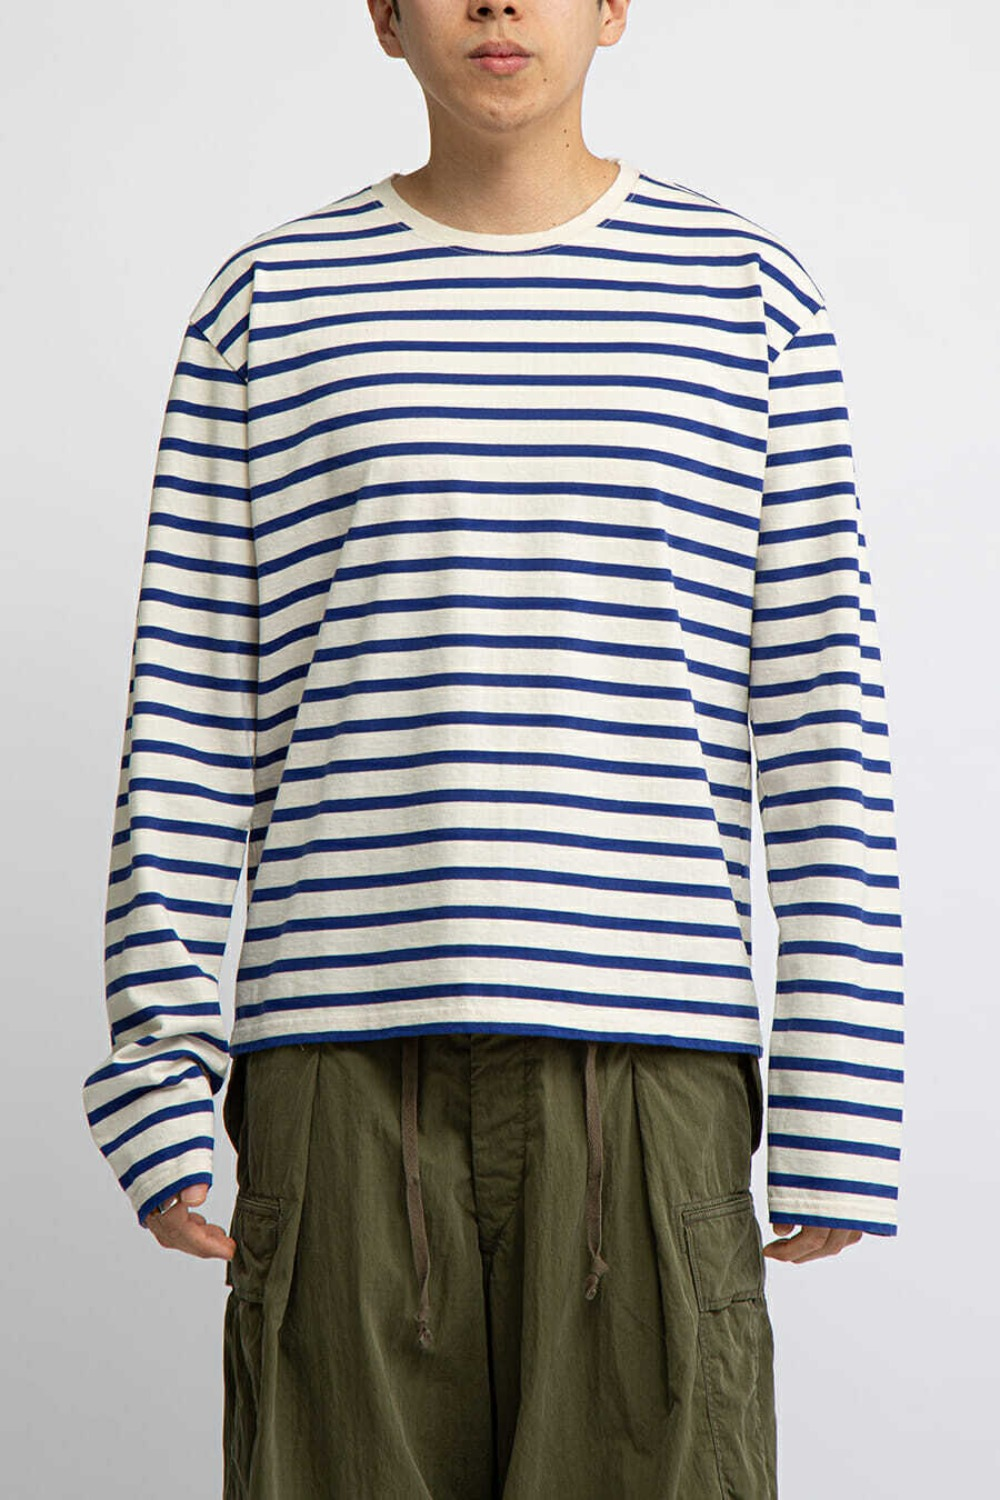 BORDER JERSEY CREW LONG SLEEVE T(SMILIE PATCH) BLUE